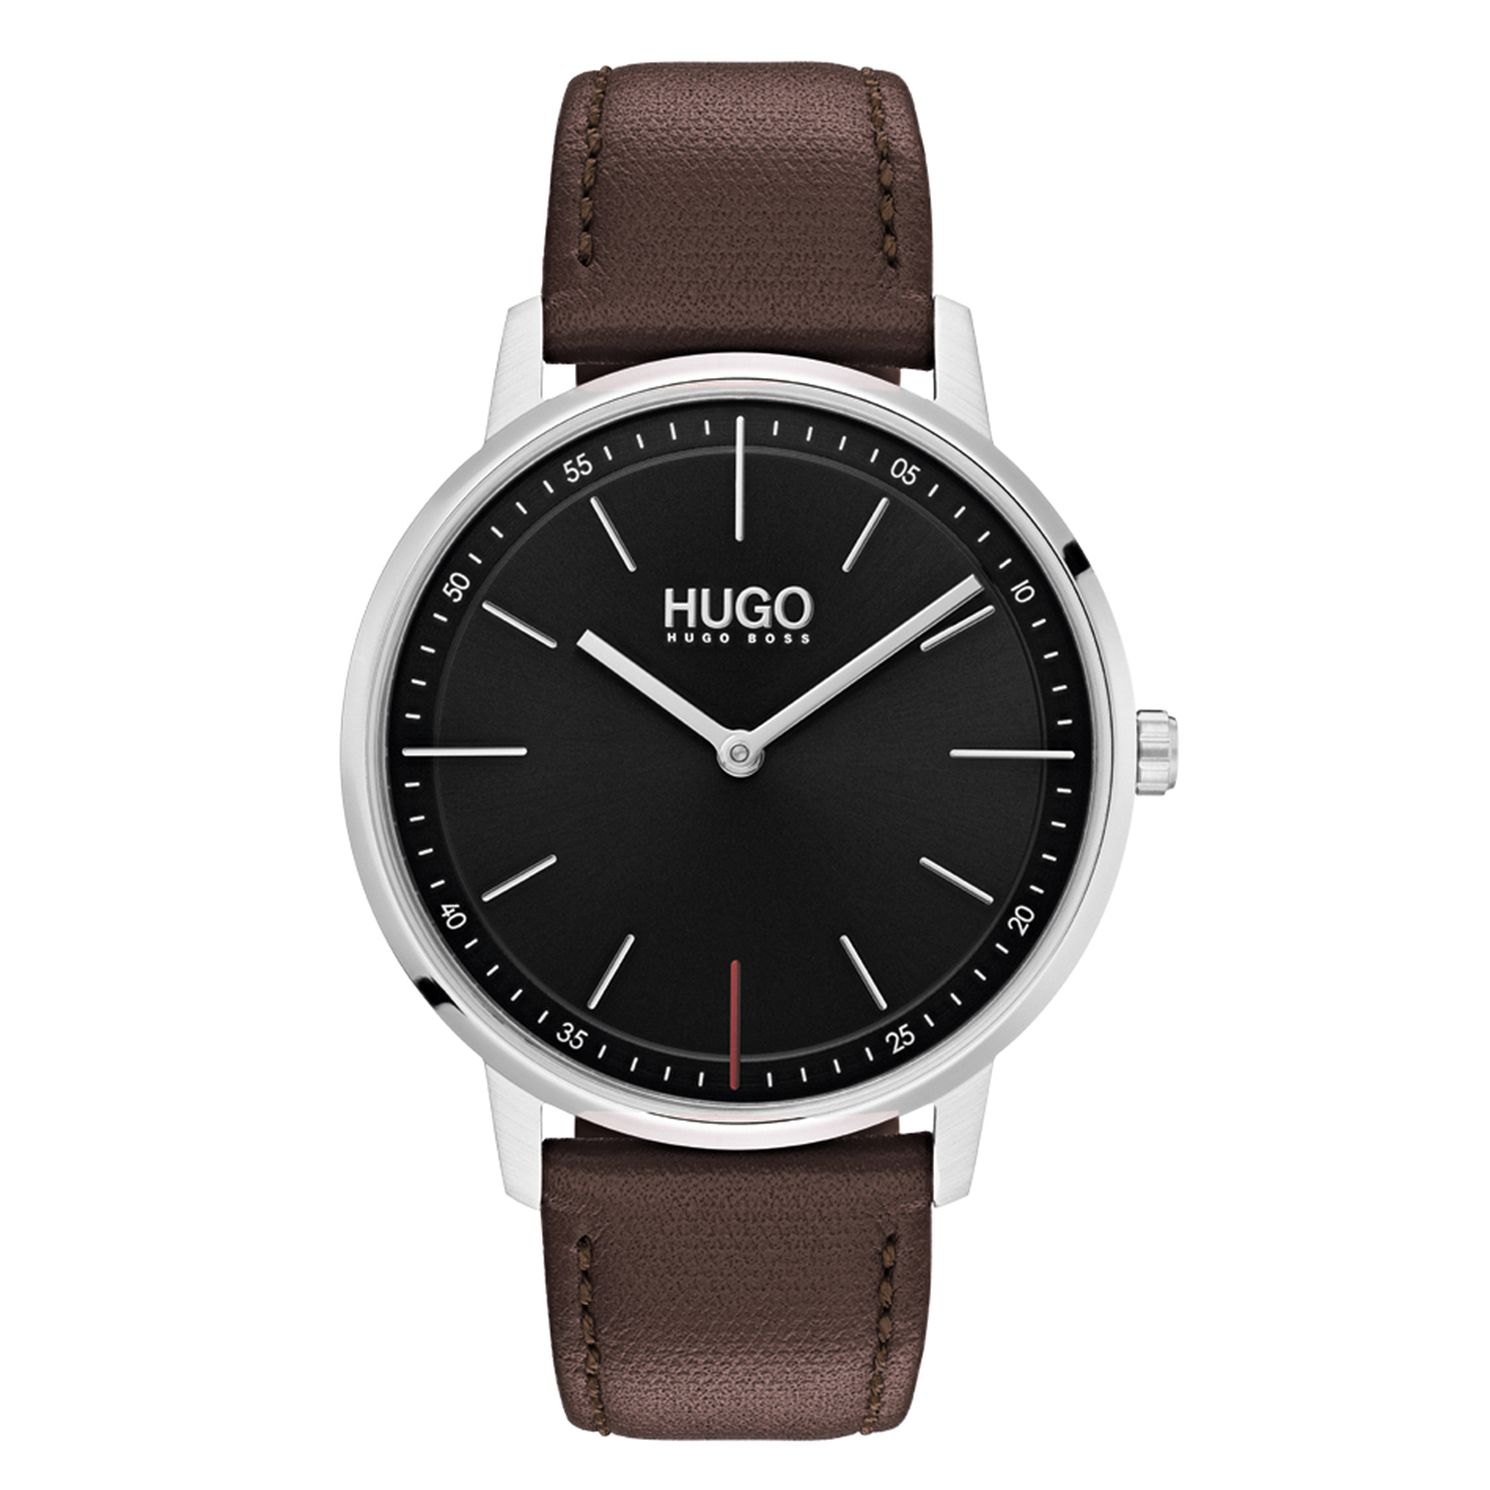 HUGO Exist Men's Brown Leather Strap Watch - Product number 9647376